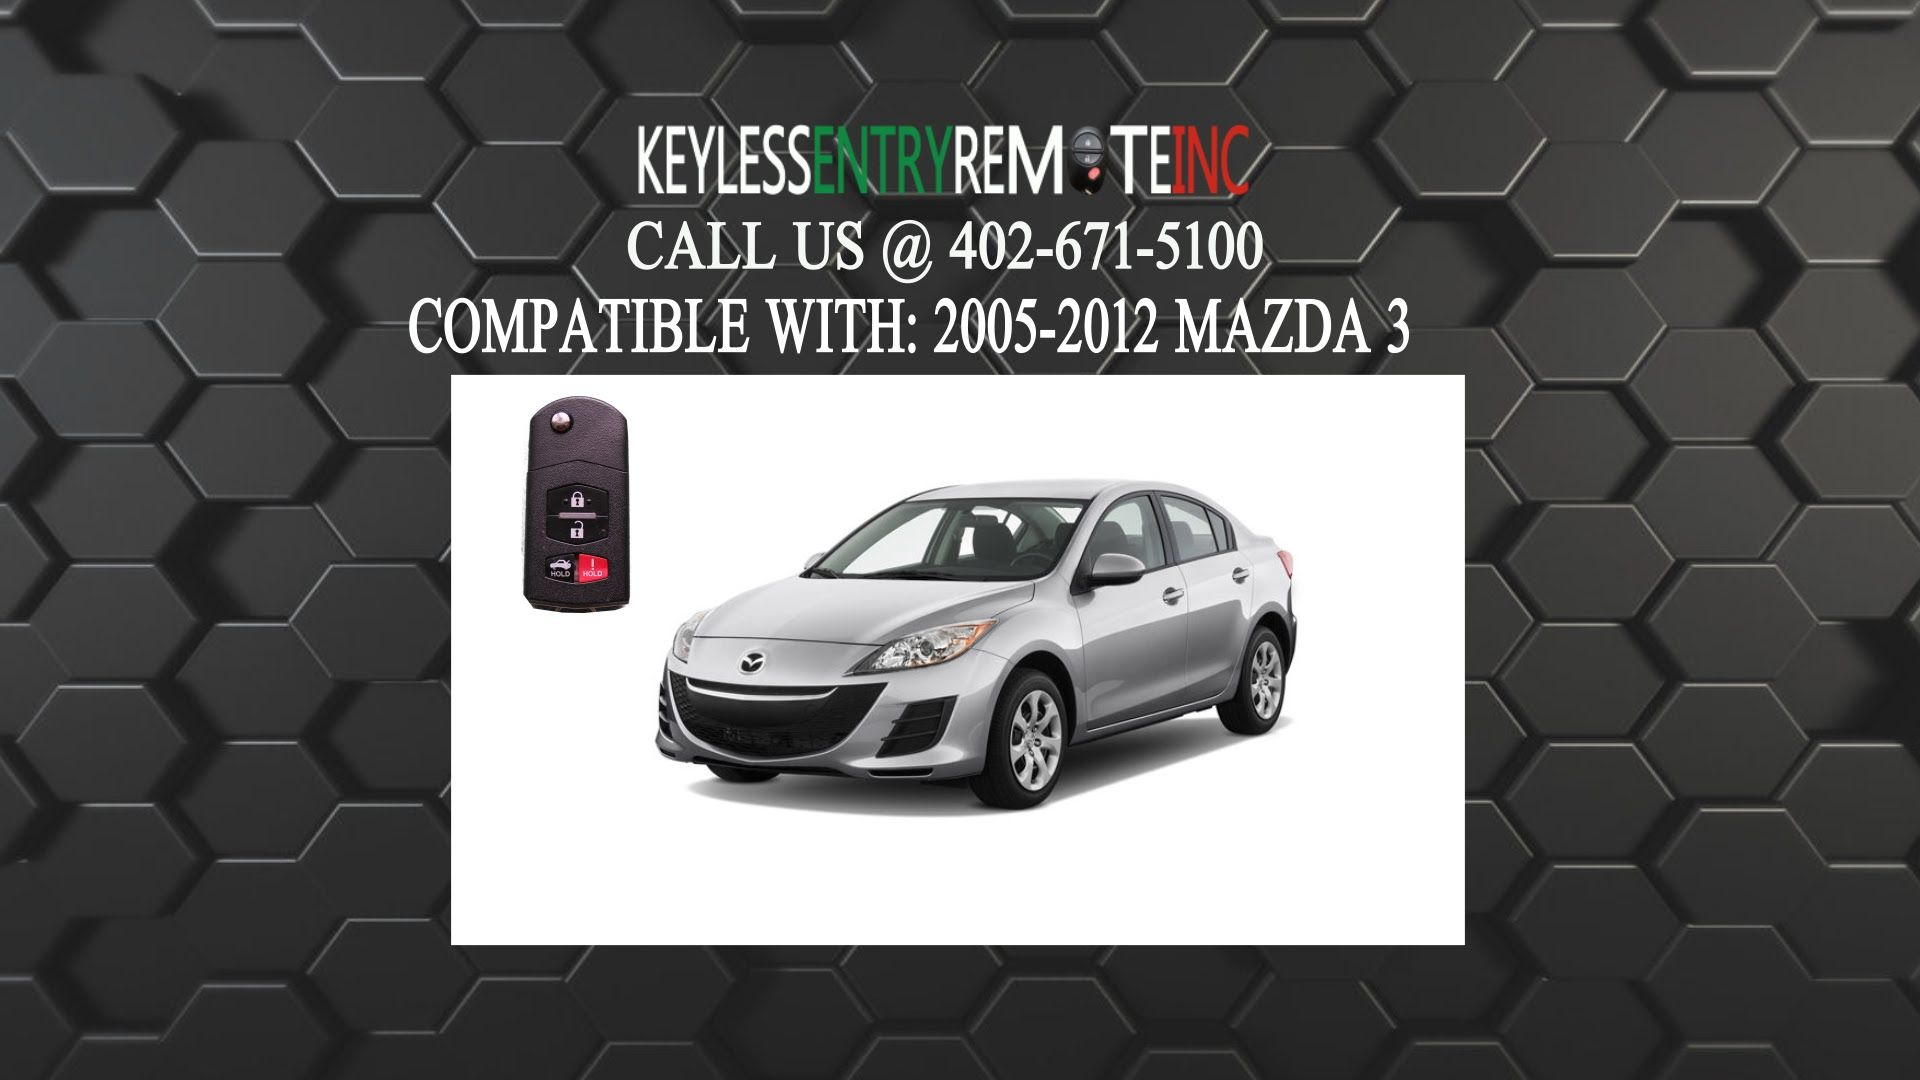 How To Replace A Mazda 3 Key Fob Battery 2010 2013 Mazda